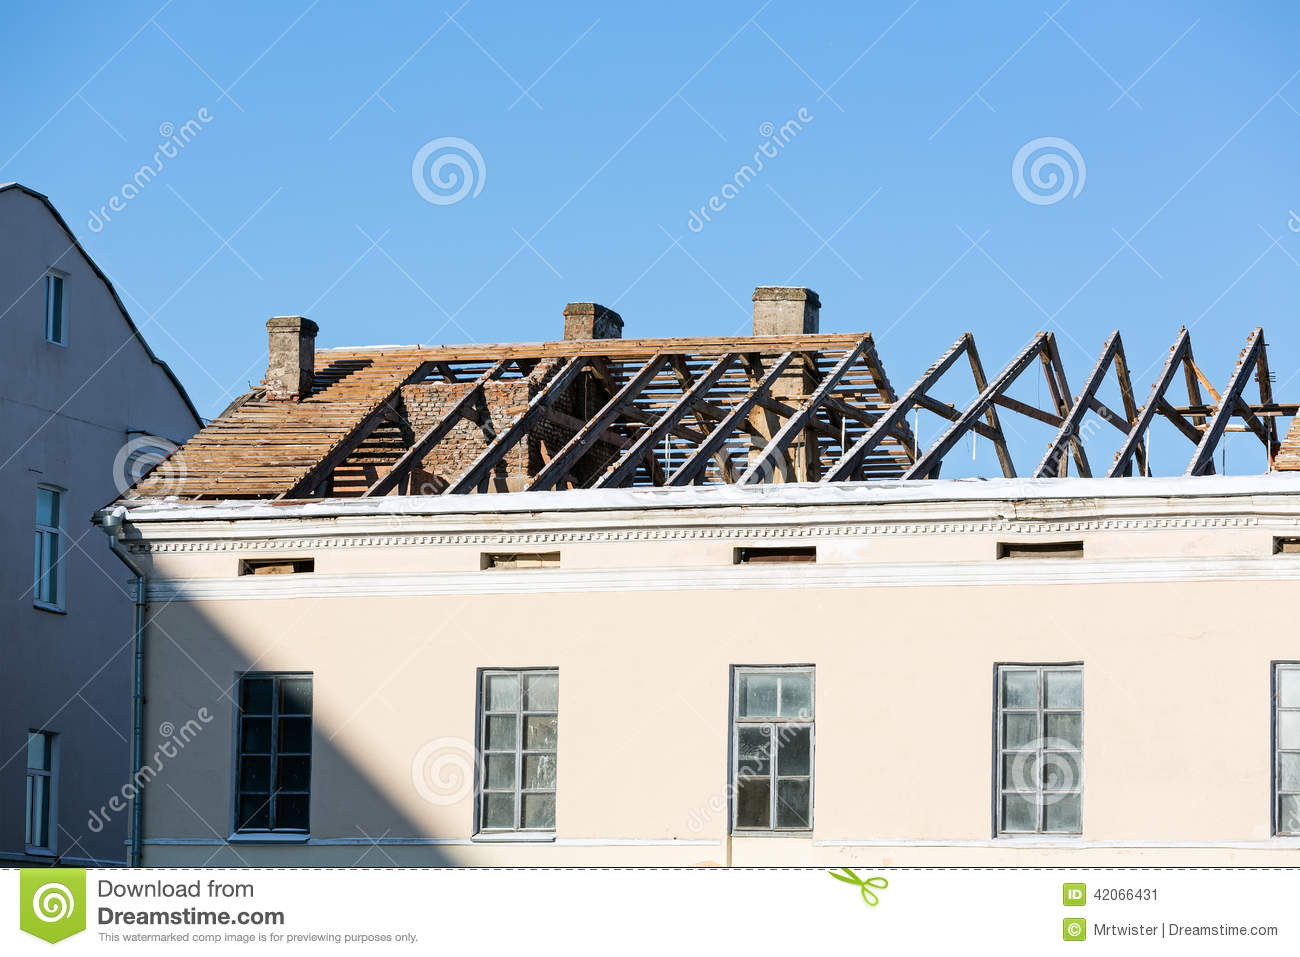 Roof reconctruction